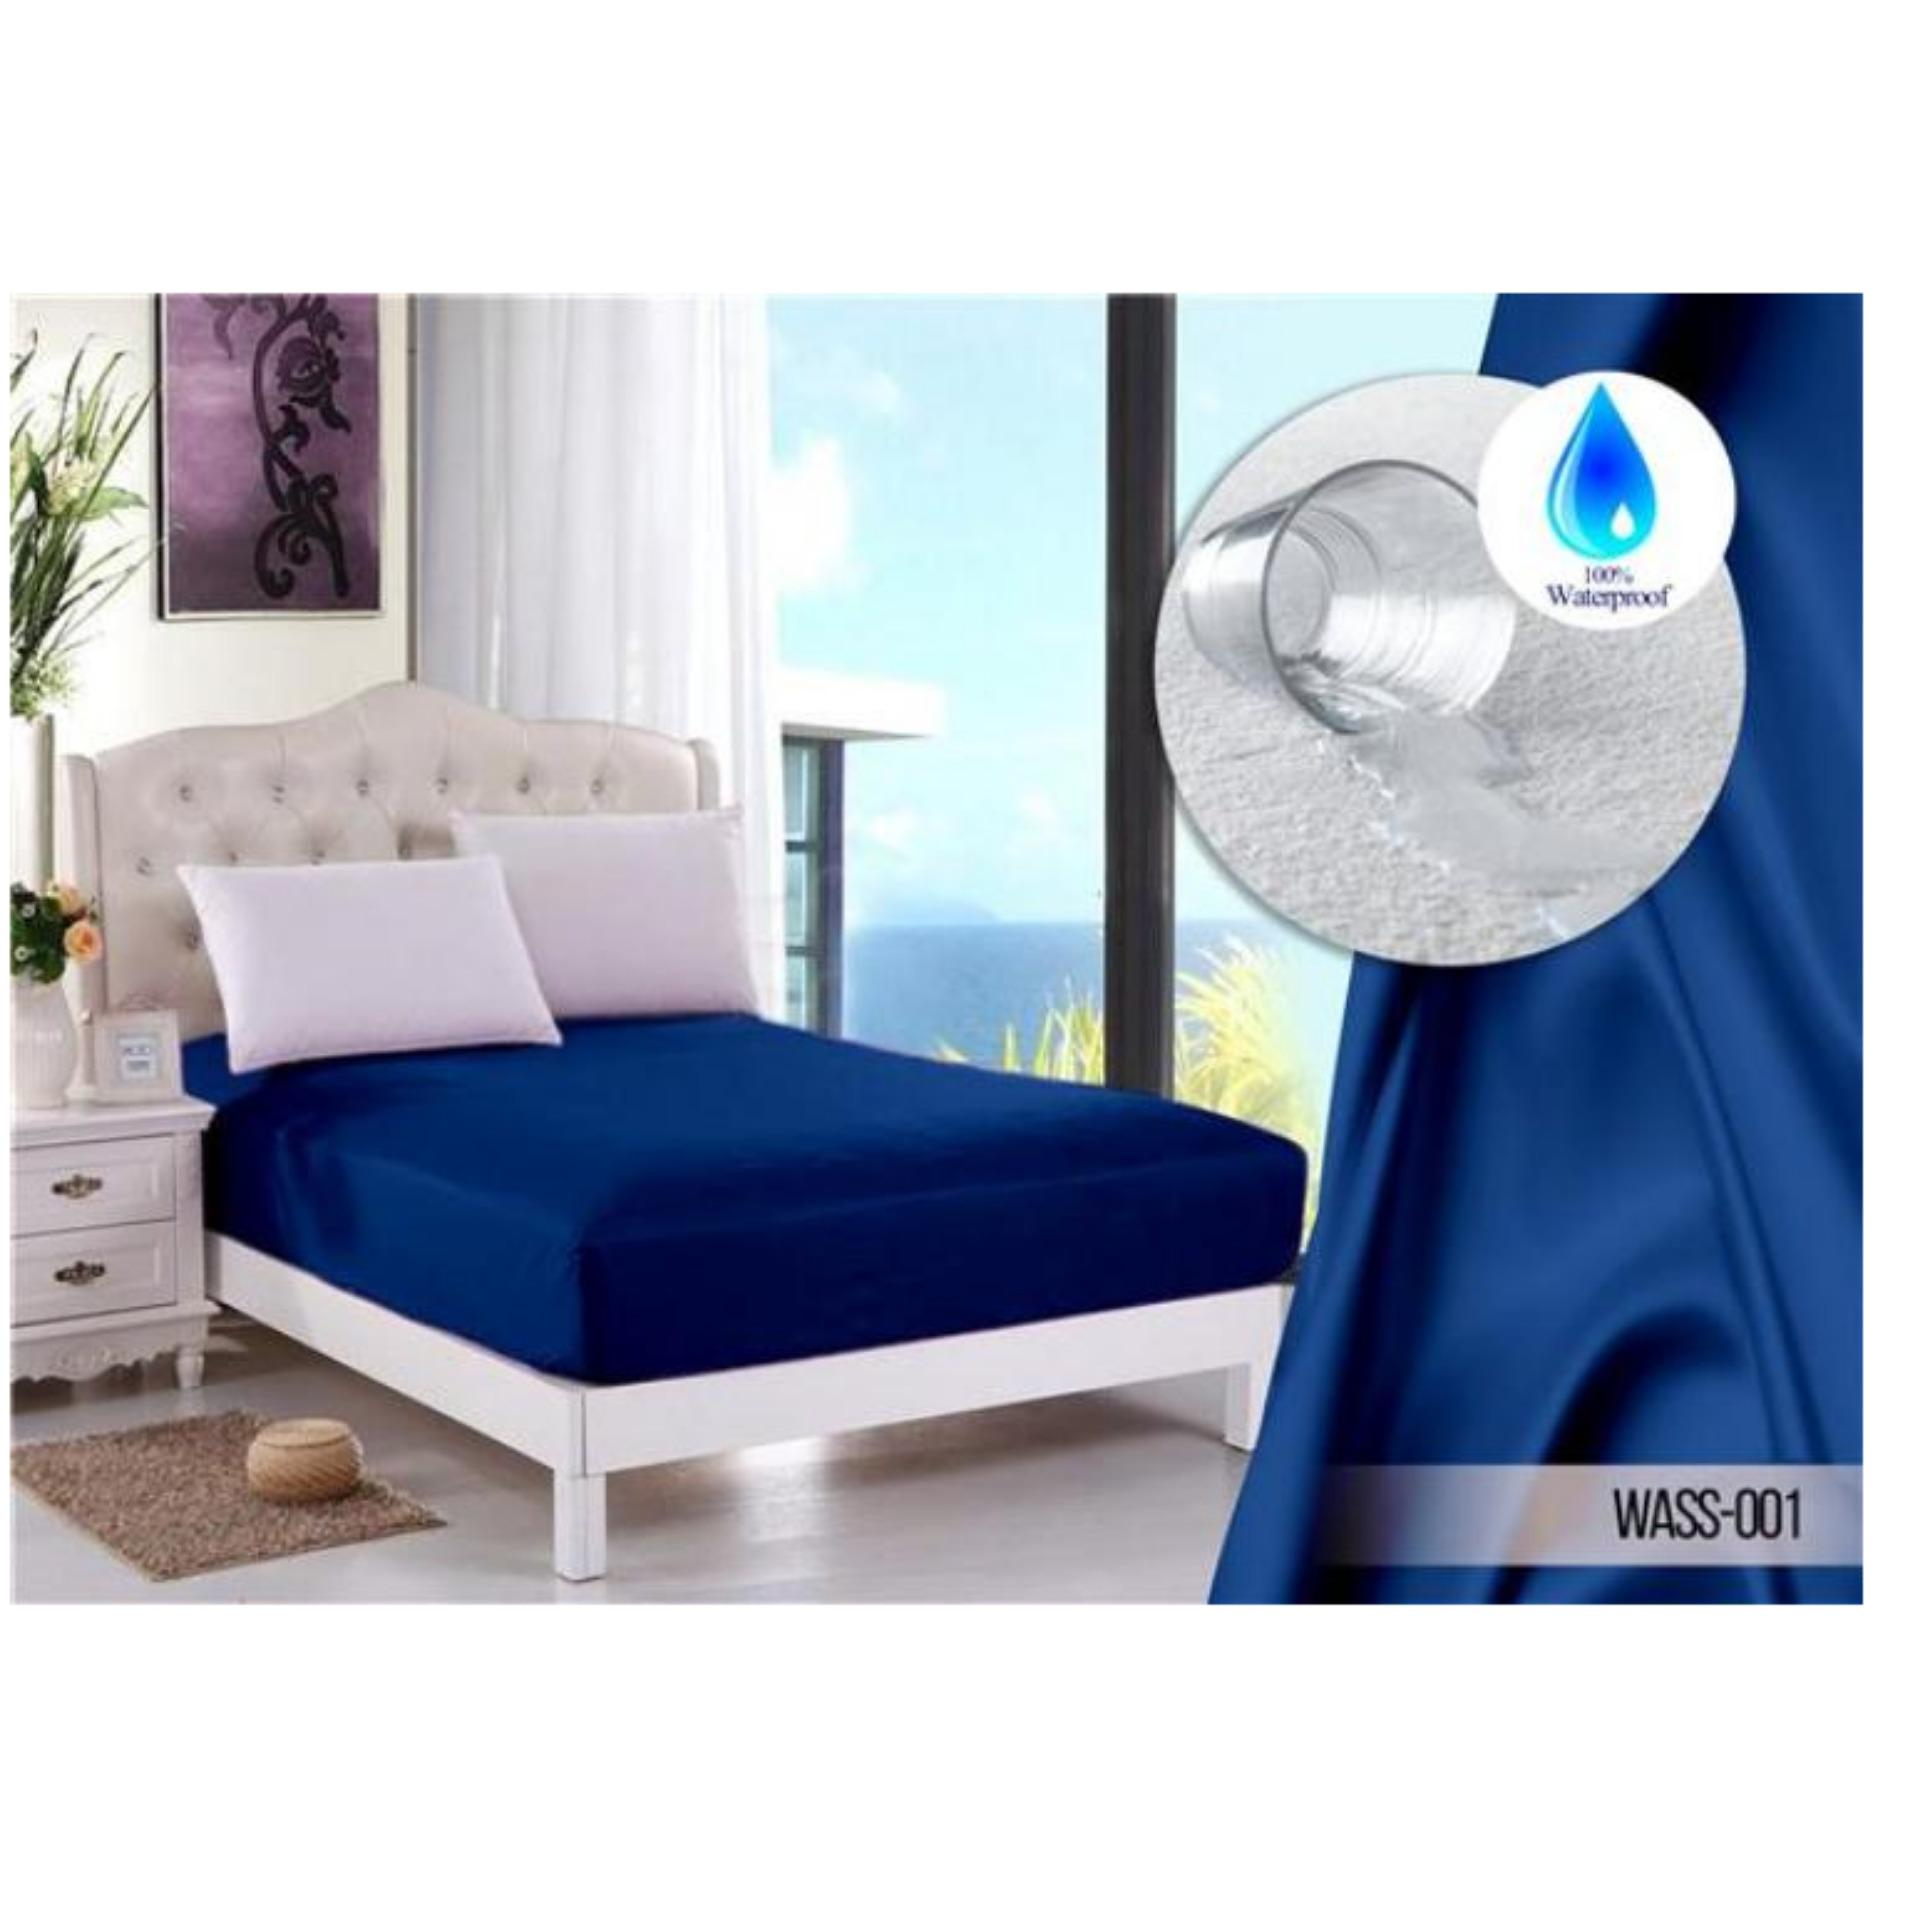 Review Toko Jaxine Sprei Waterproof Anti Air Biru Tua Online